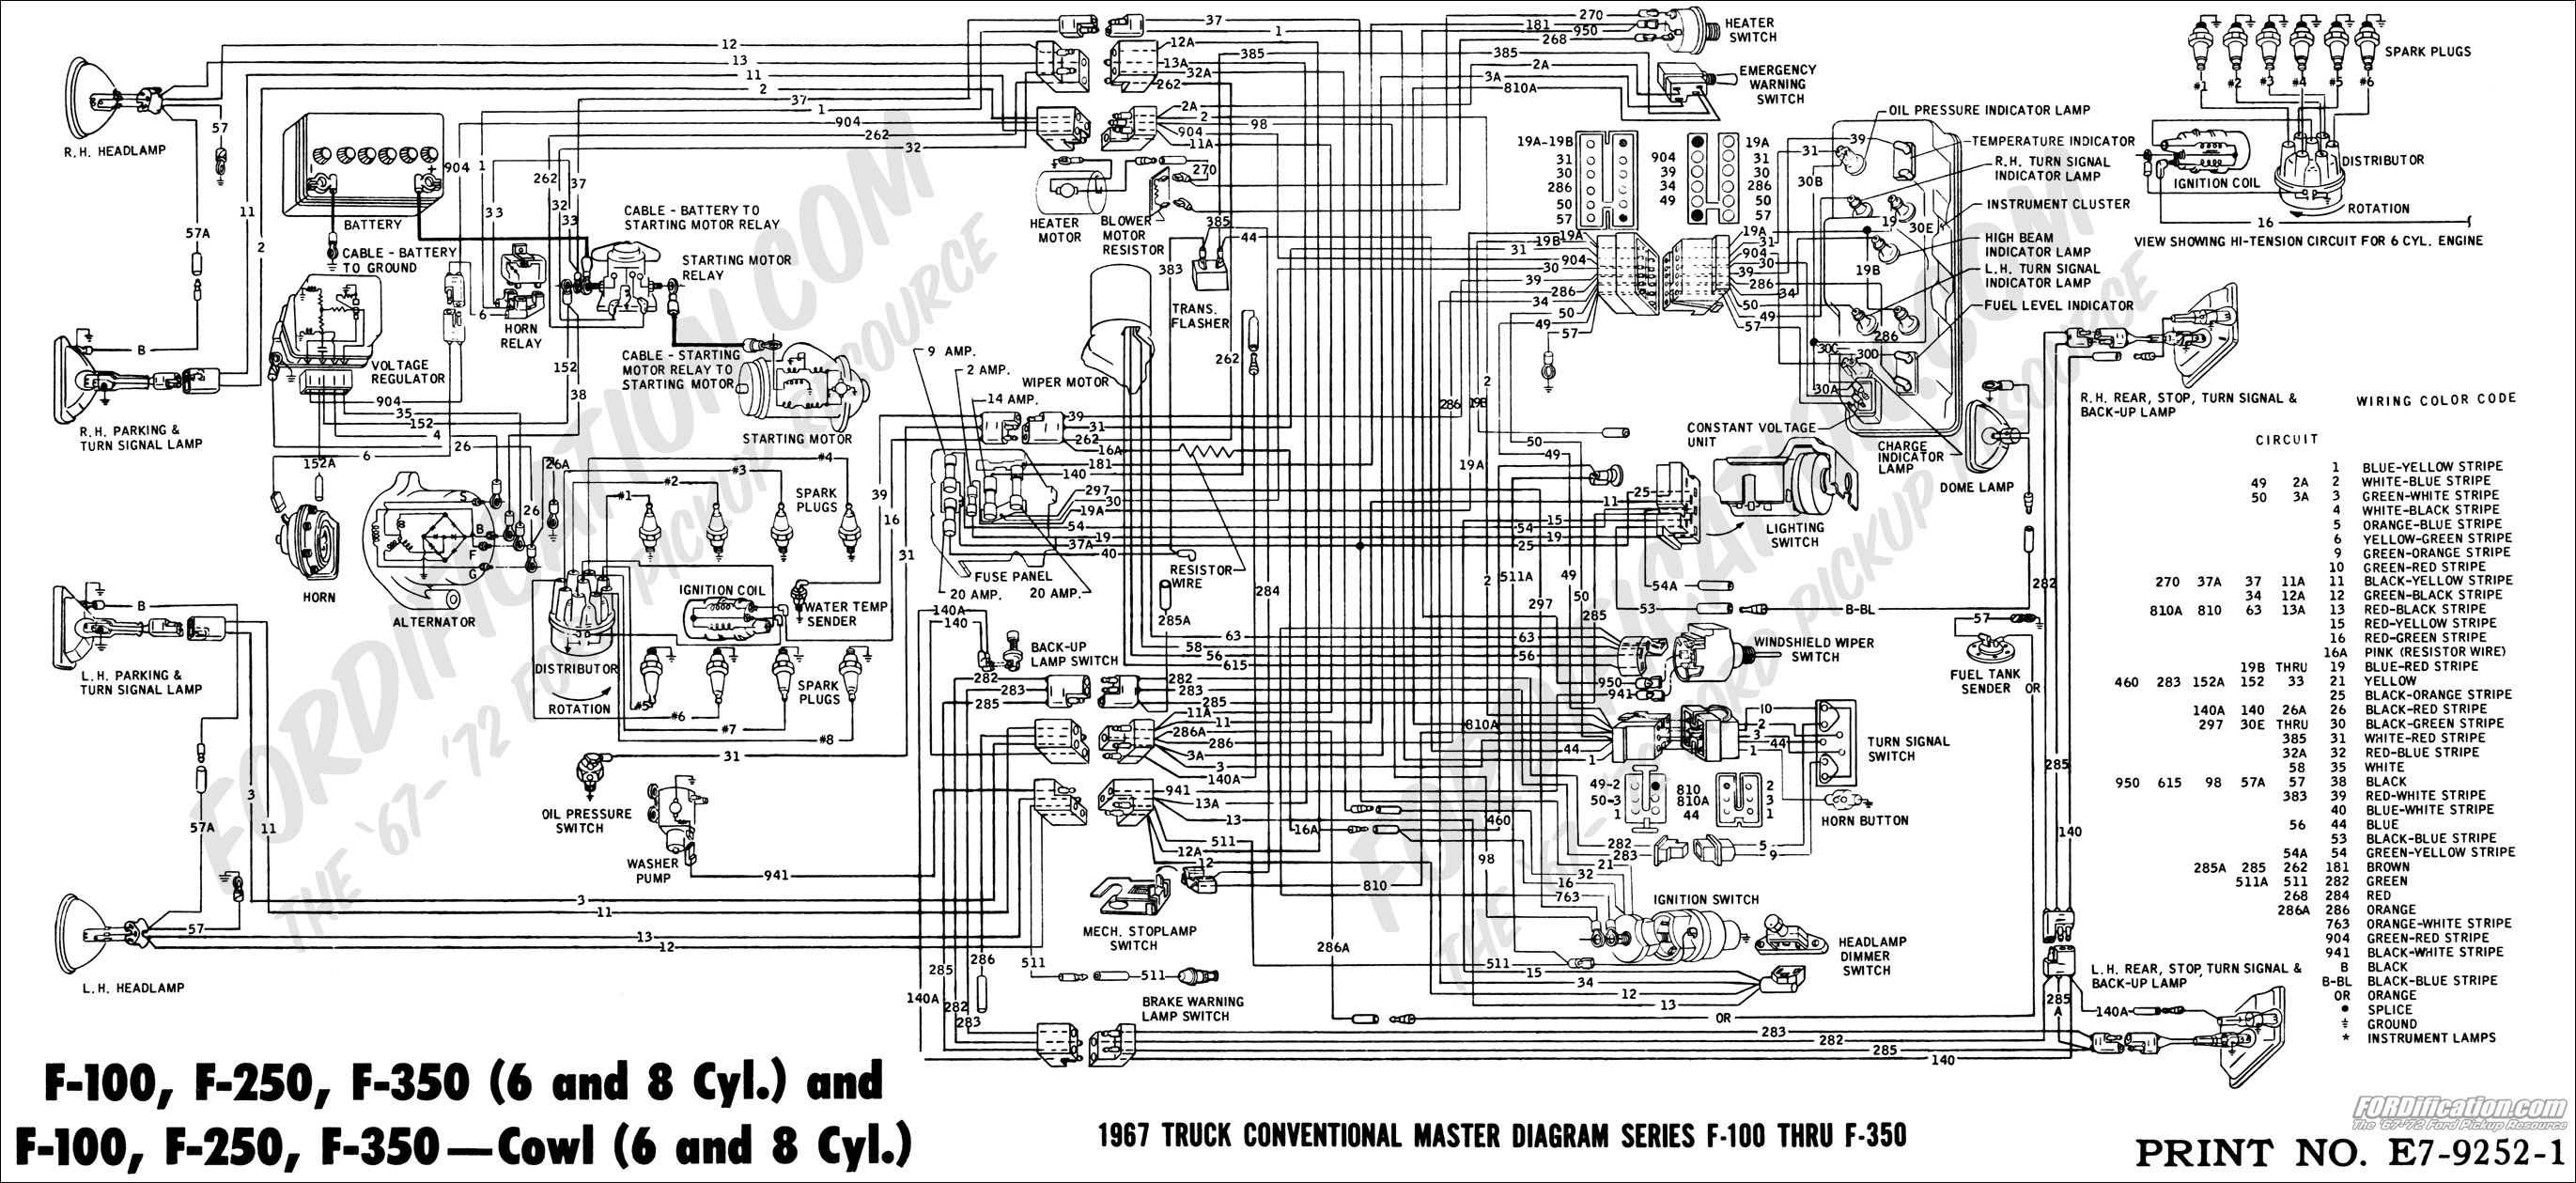 Ford Wiring Harness For Vans Diagrams Schematic 2000 Expedition Stereo Diagram Used Data Cigarette Lighter